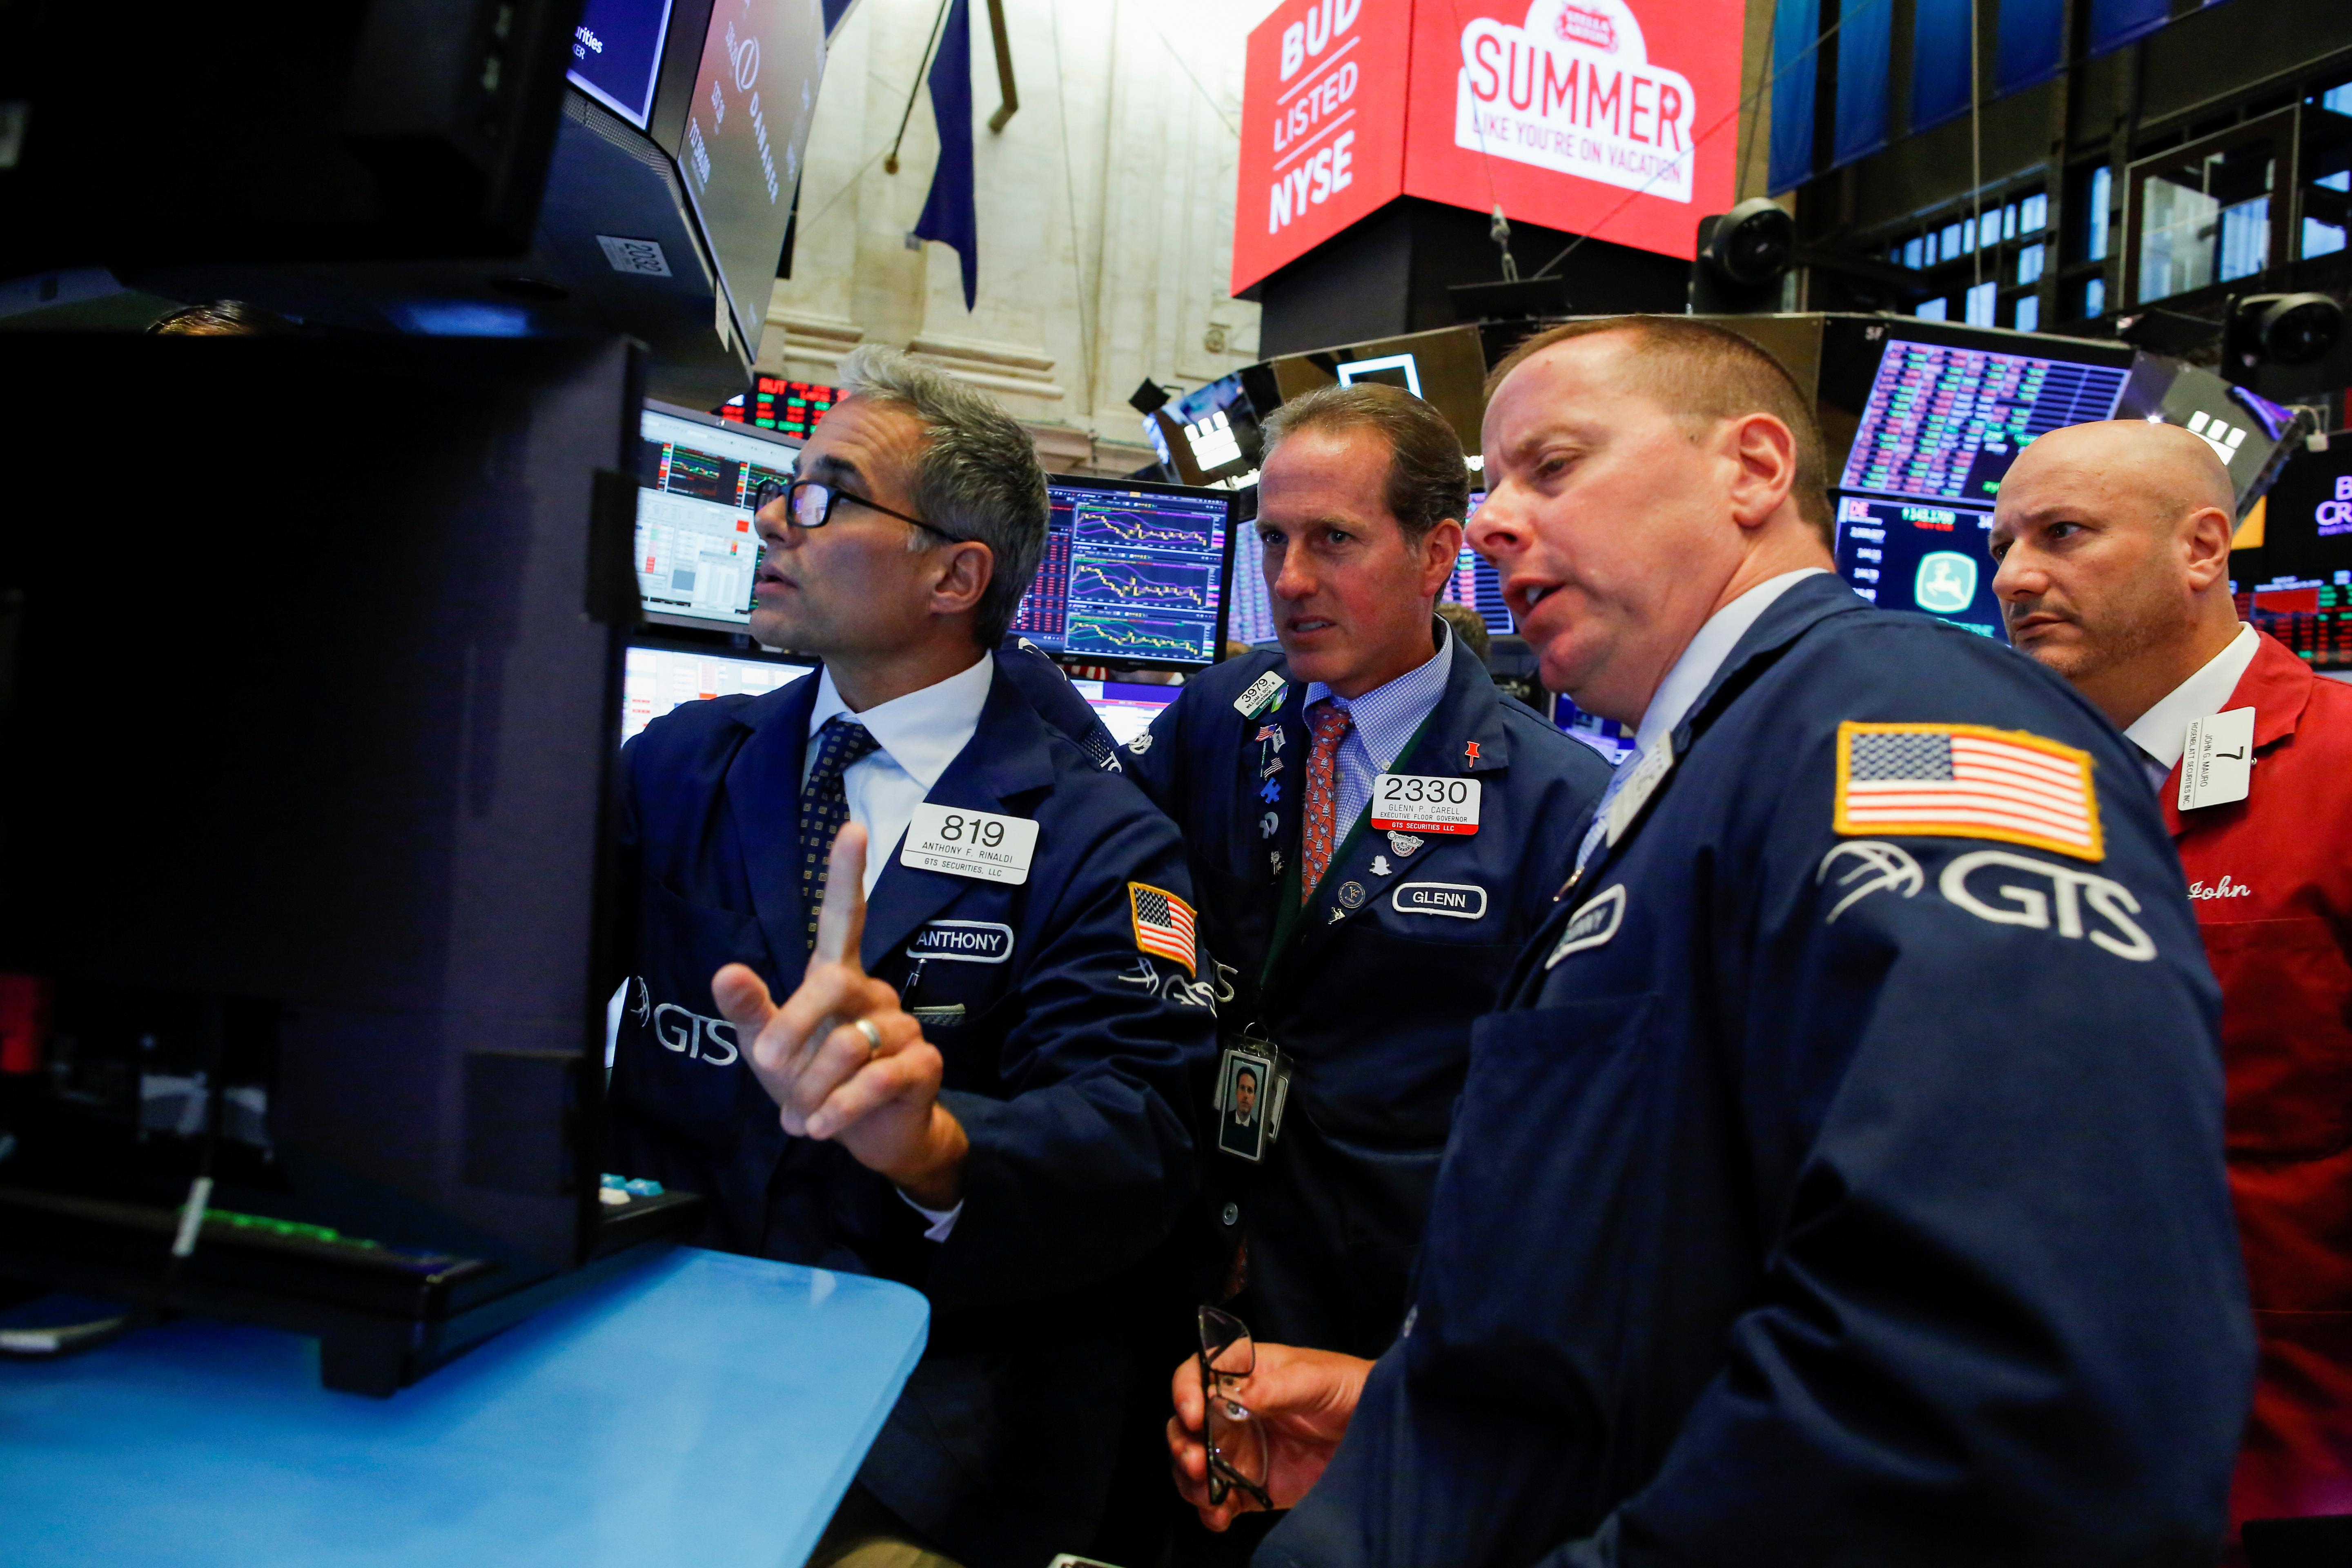 Stock market news: August 16, 2019